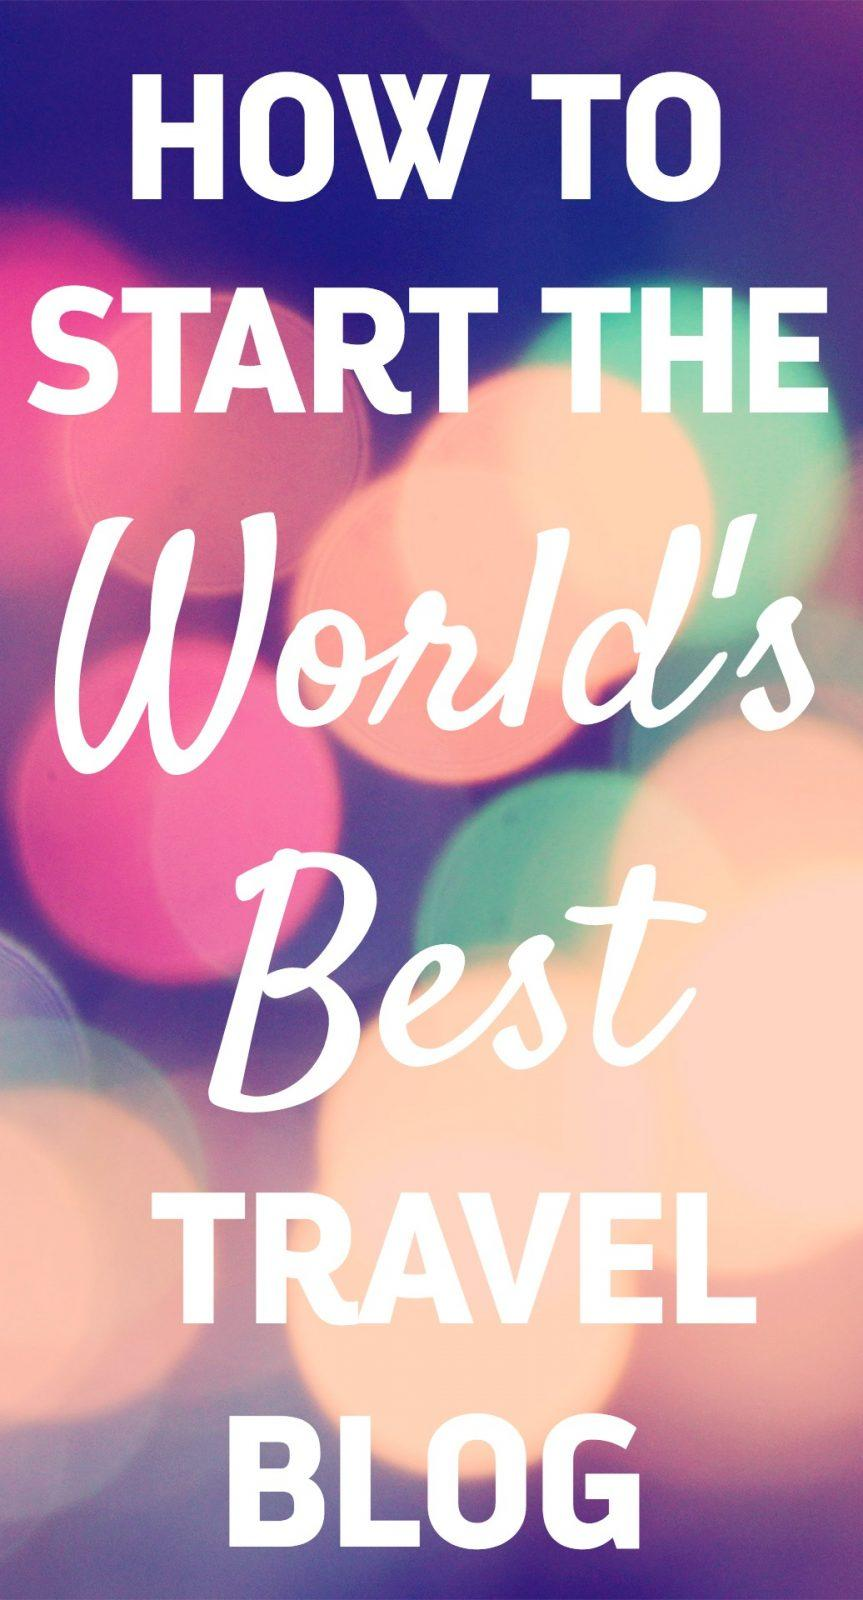 how to start successful travel blog - blogging tips